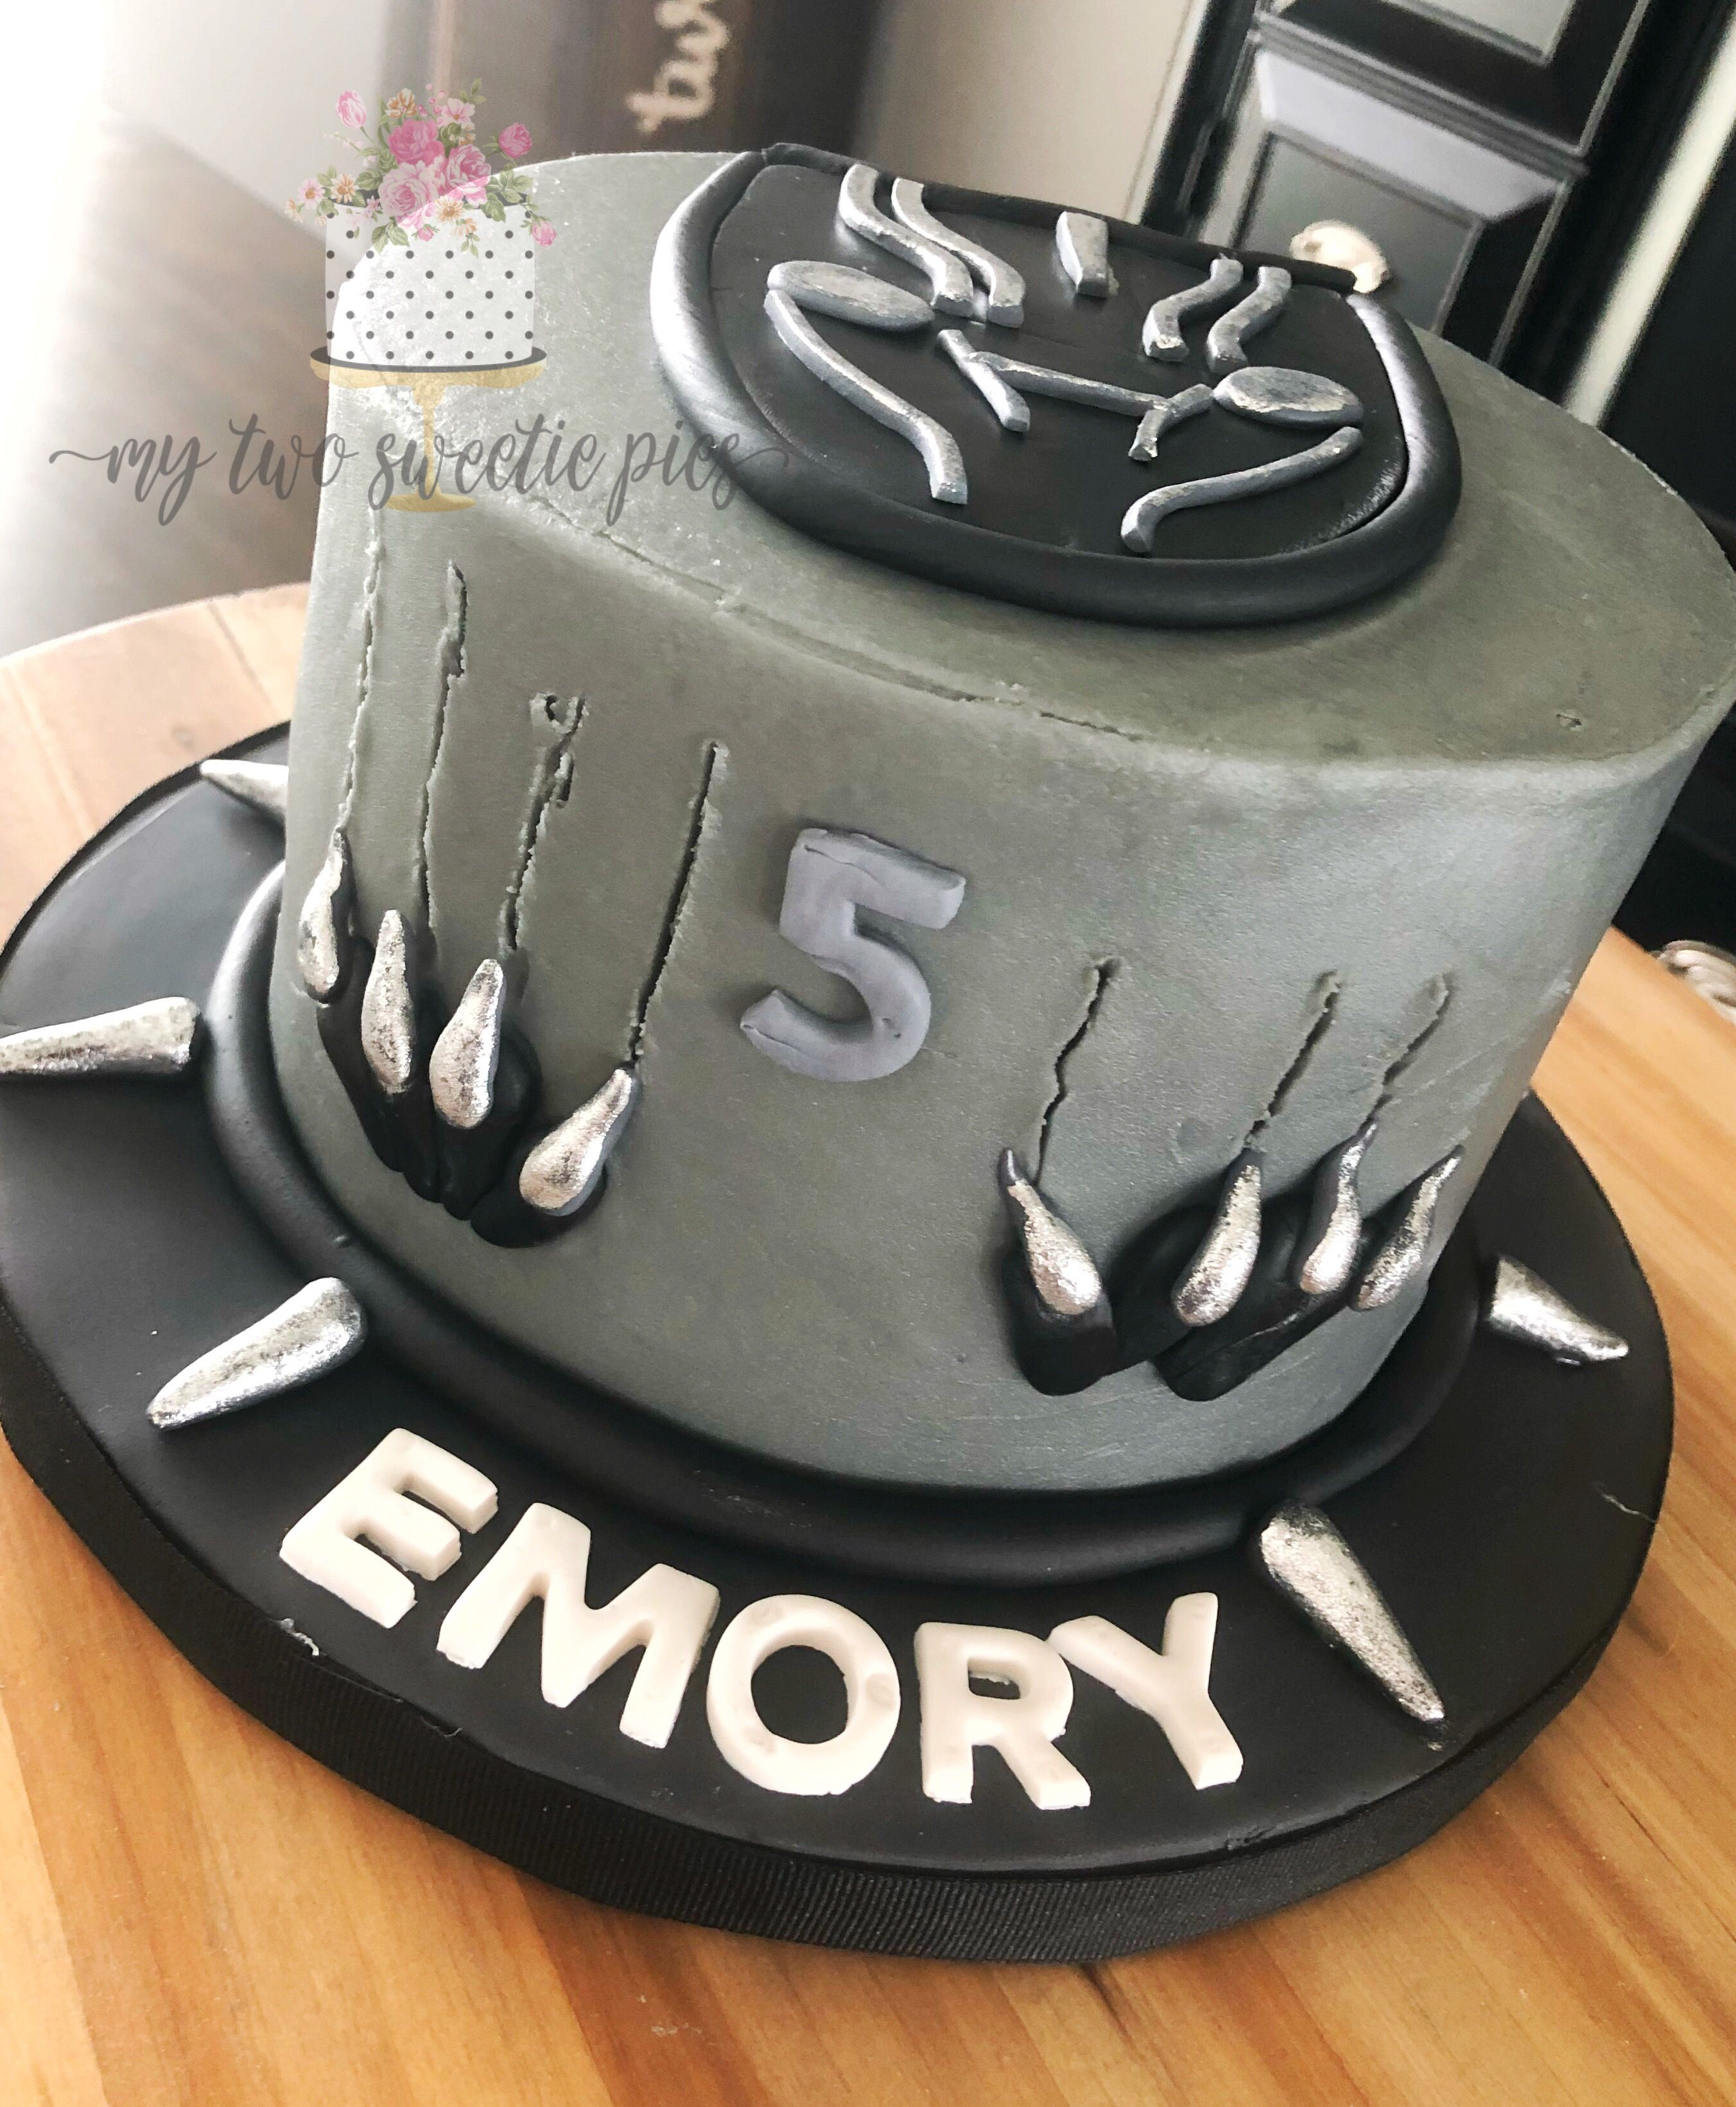 Black Panther With Images Birthday Party Cake Superhero